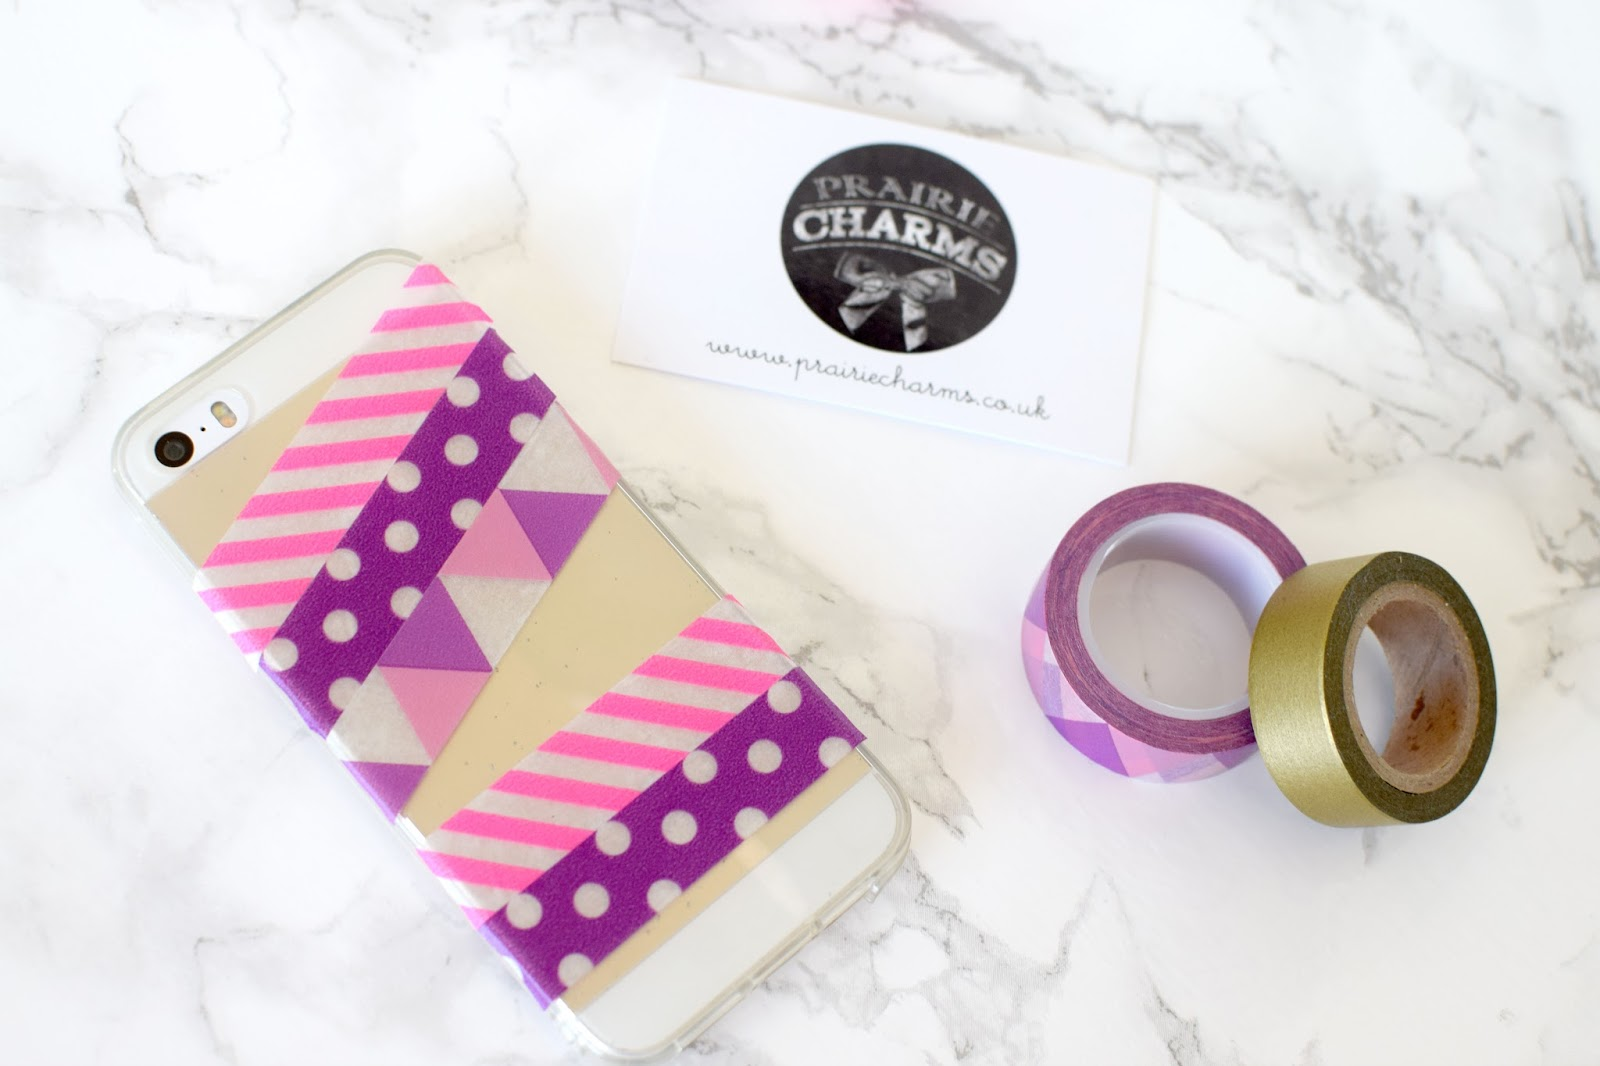 3 Ways to Washi with Prairie Charms